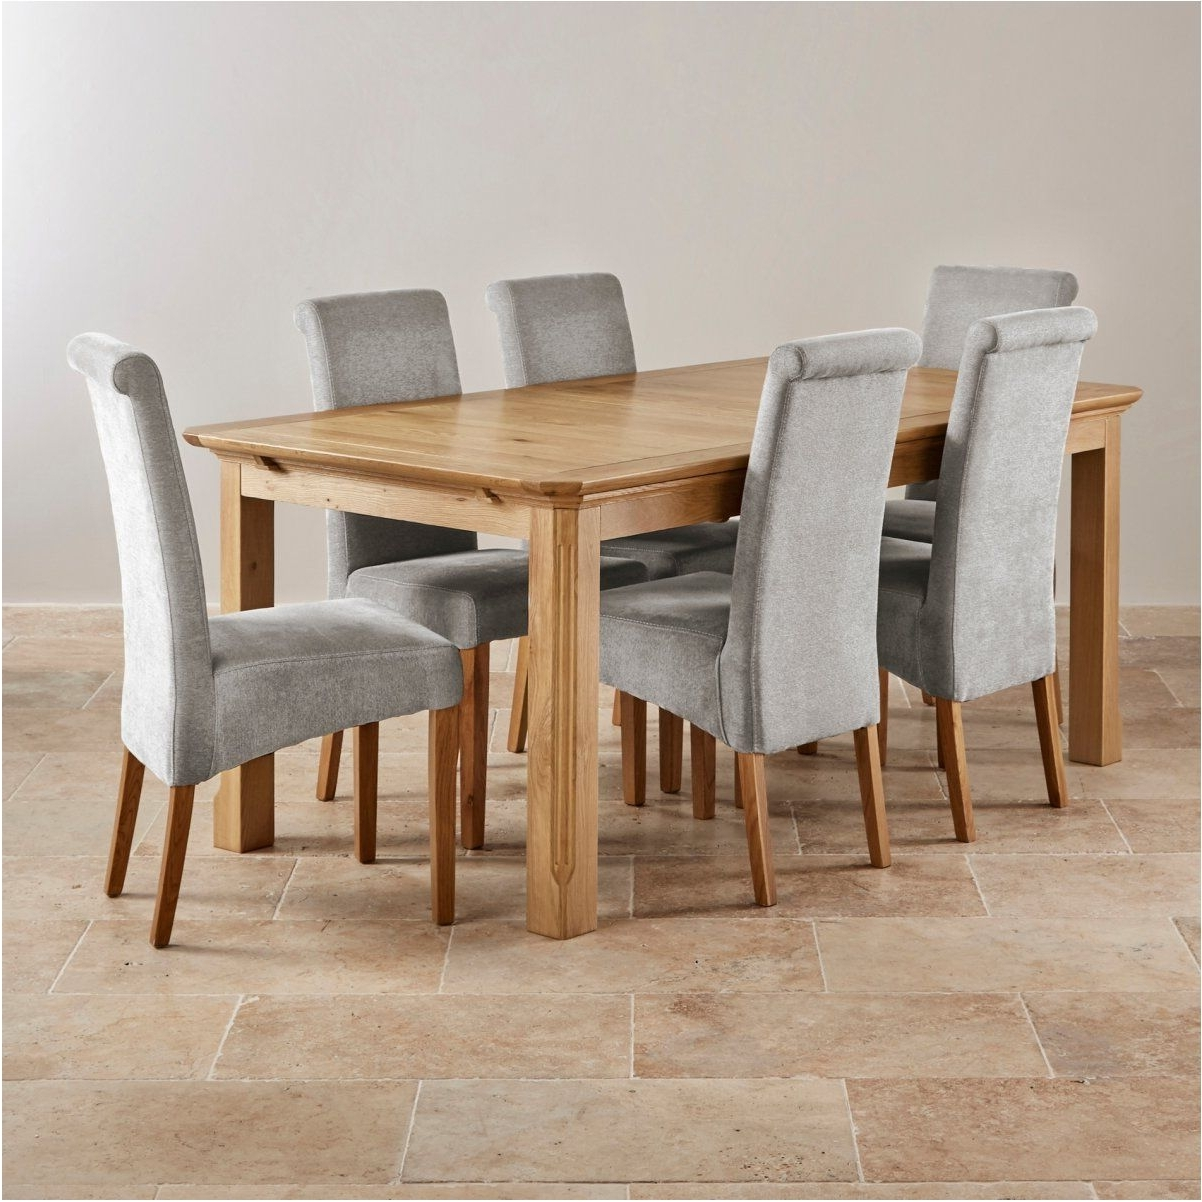 Oak Dining Set 6 Chairs With Regard To Favorite Best Solid Oak Dining Table And 6 Chairs Solid Oak Dining Table And (View 18 of 25)